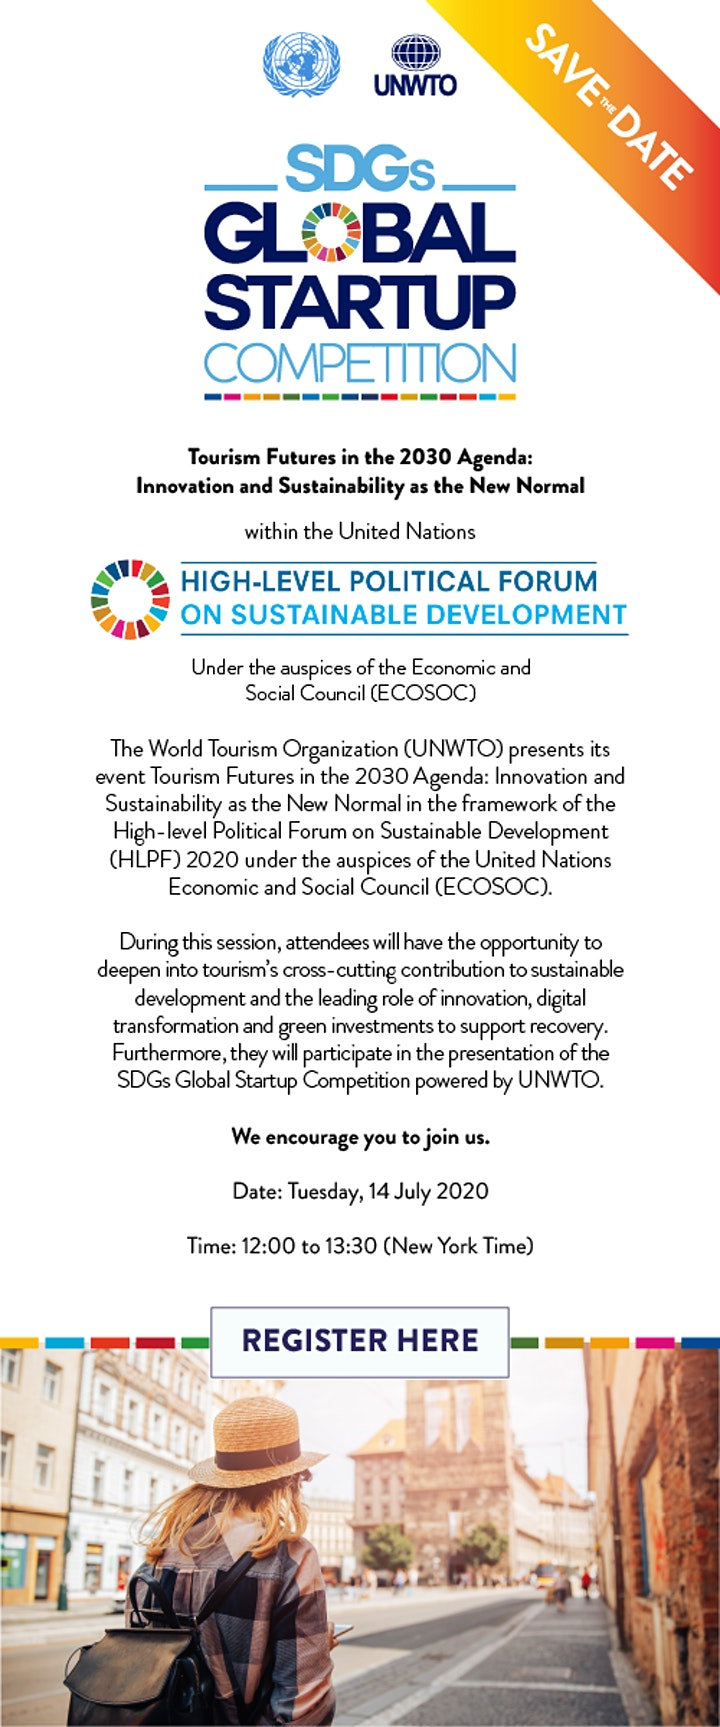 UNWTO Tourism Futures in the 2030 Agenda: Innovation and Sustainability image